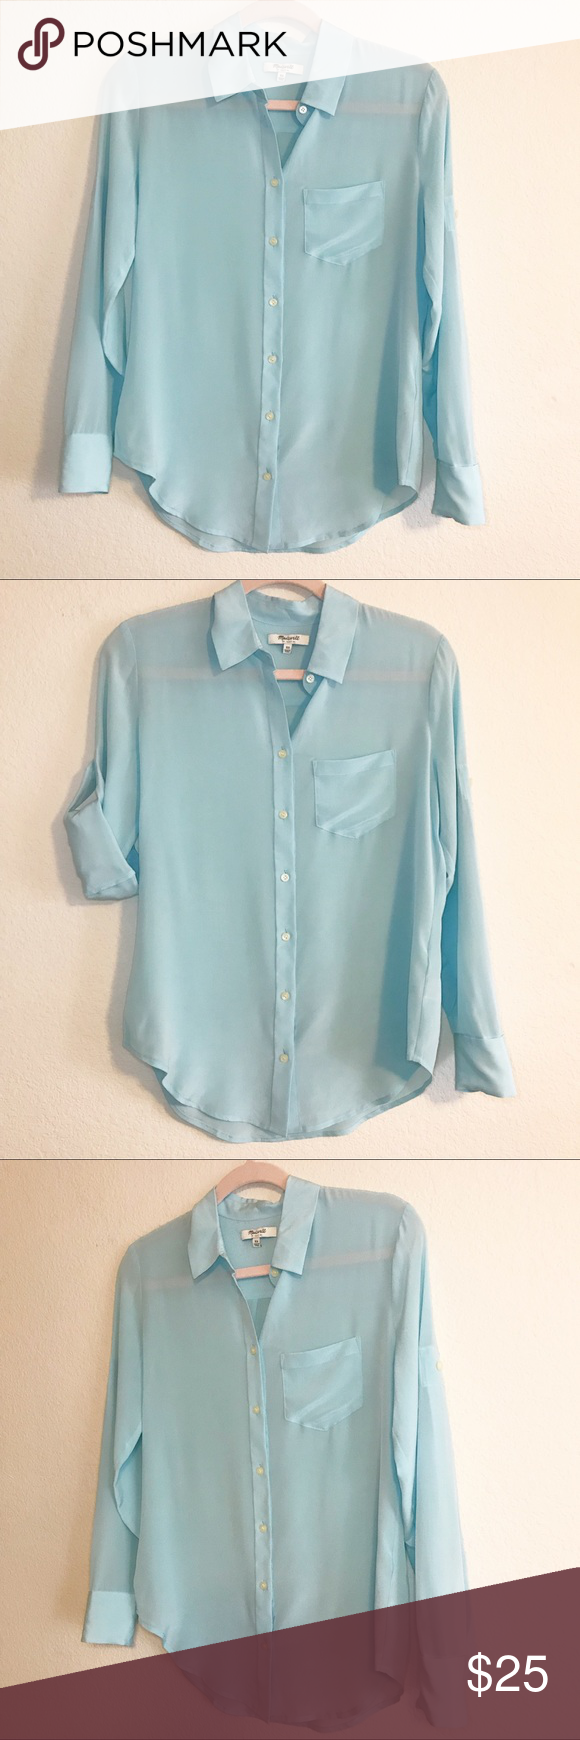 59c14622 Madewell Silk Boy Shirt Madewell button down shirt in a pretty light blue  color Sleeves can